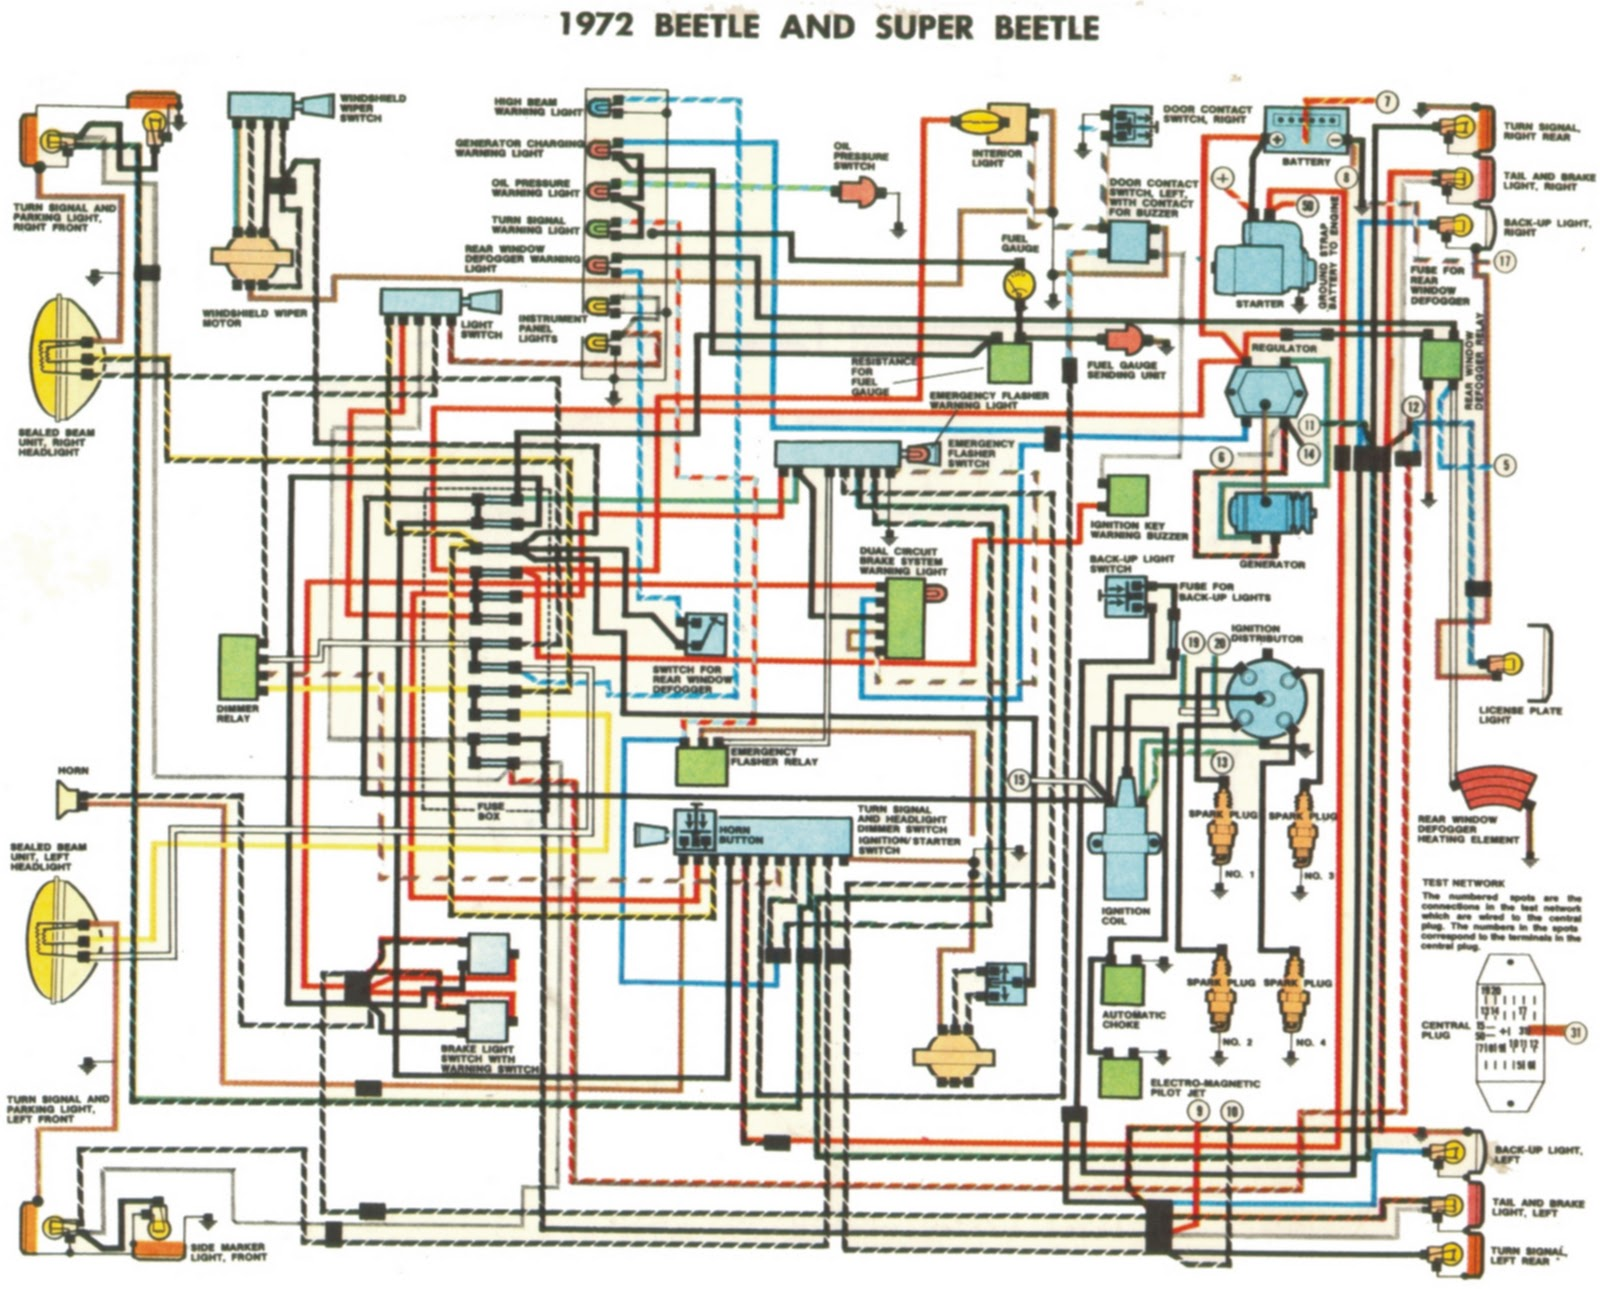 1972 beetle and super beetle wiring diagrams wiring diagram for 1971 vw beetle the wiring diagram 1969 beetle wiring diagram at sewacar.co